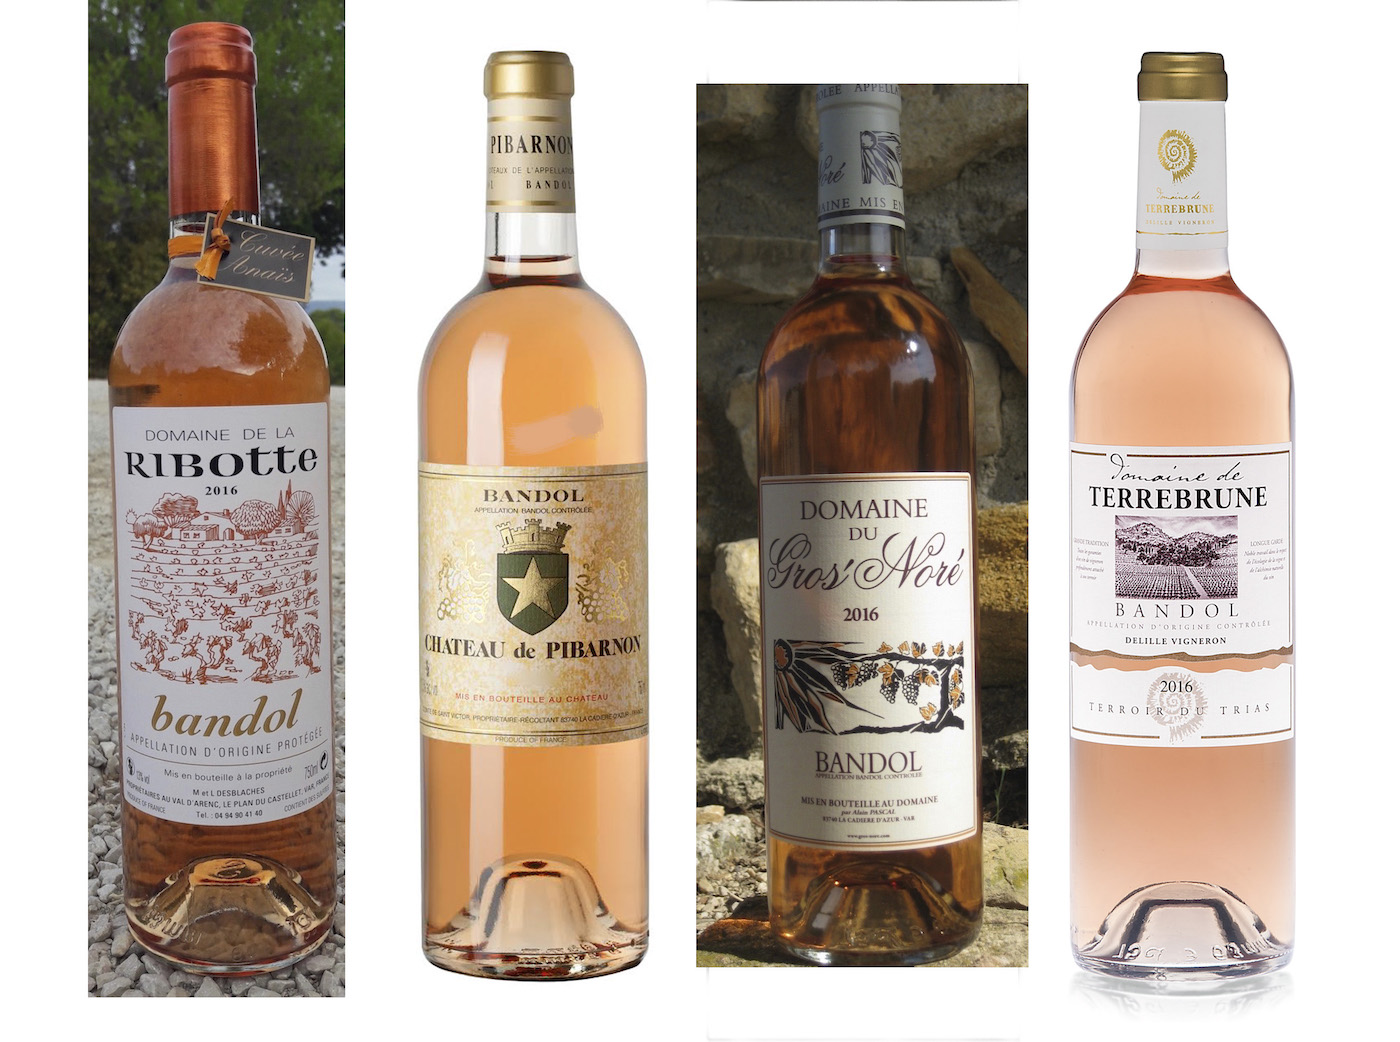 Bandol Rosé is a Flat Out Exquisite Antidote to Paleness. Think Mourvèdre.